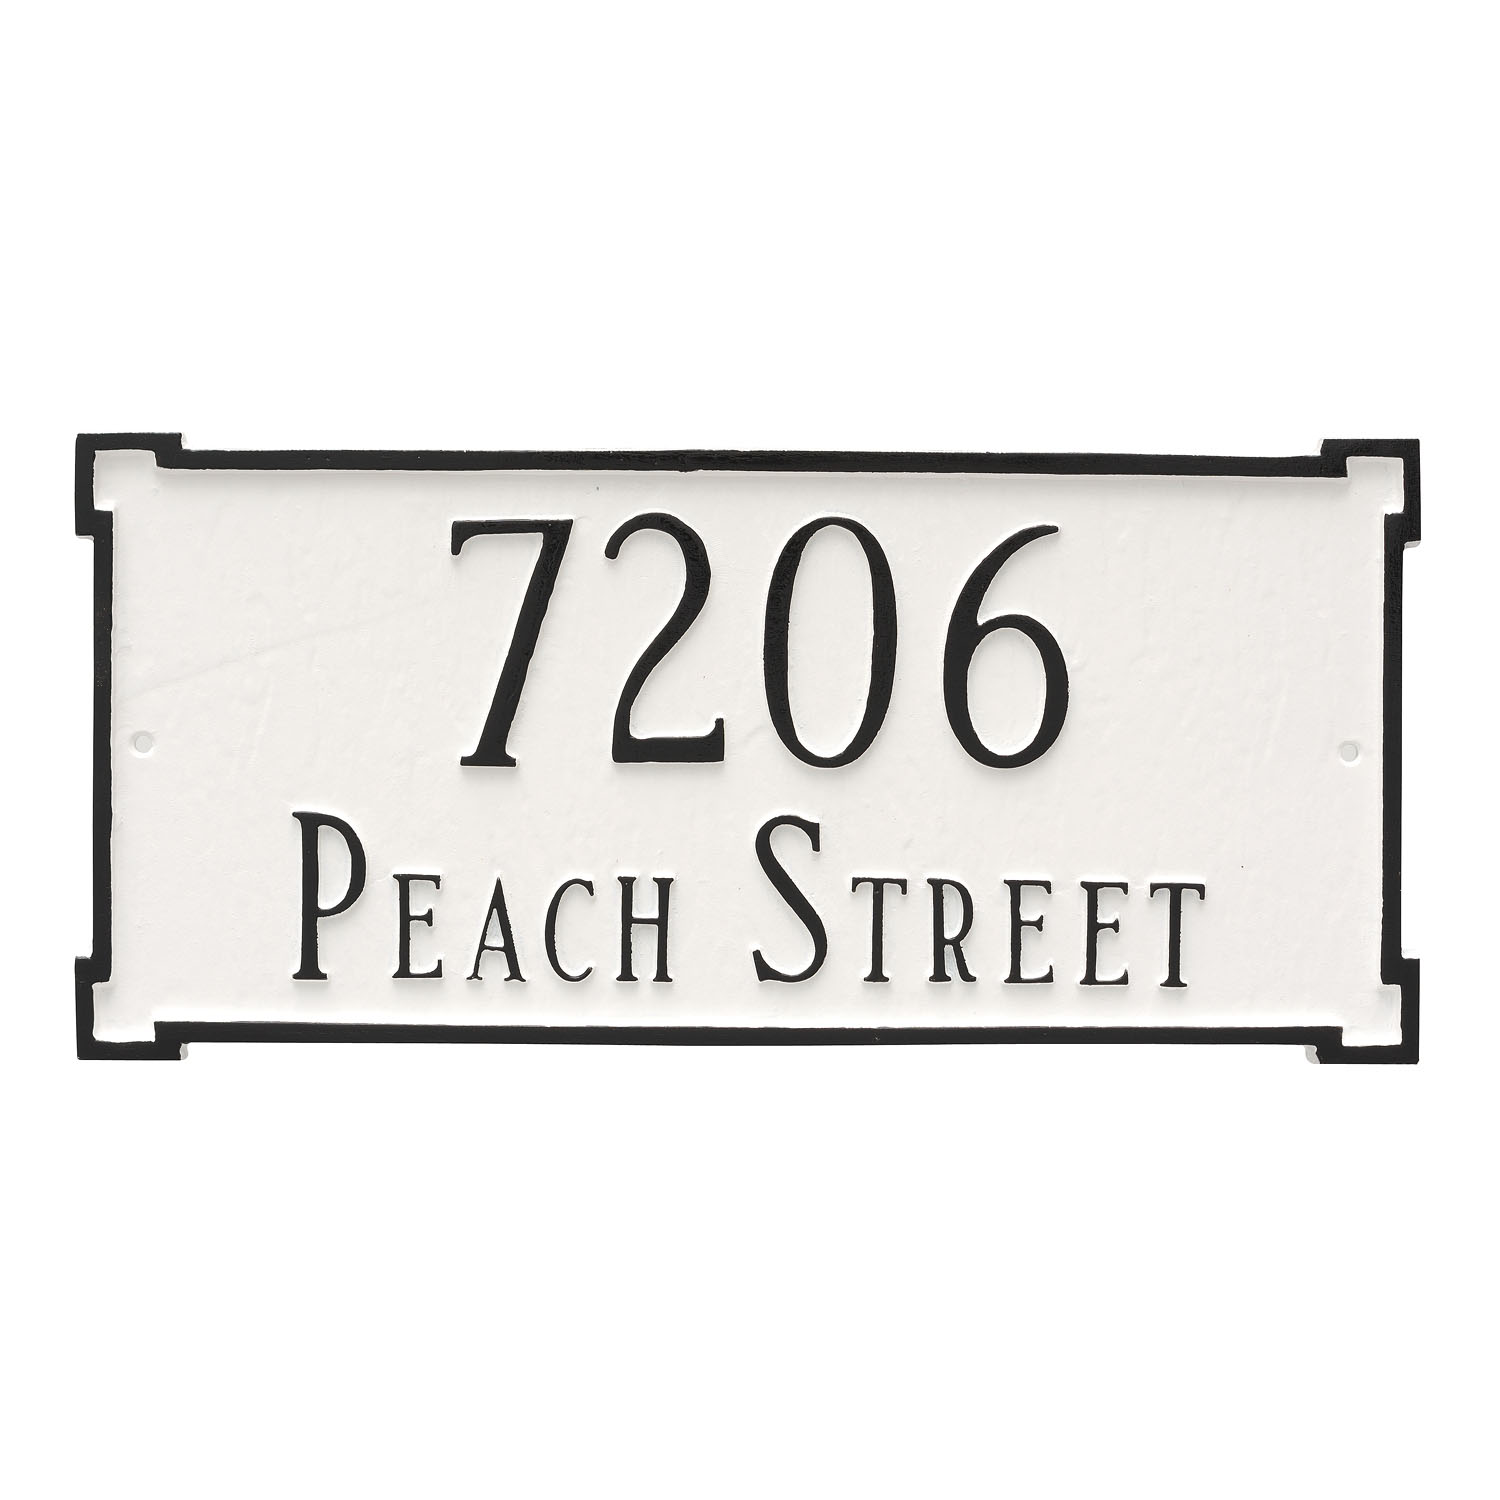 New Yorker Address Plaque - Standard